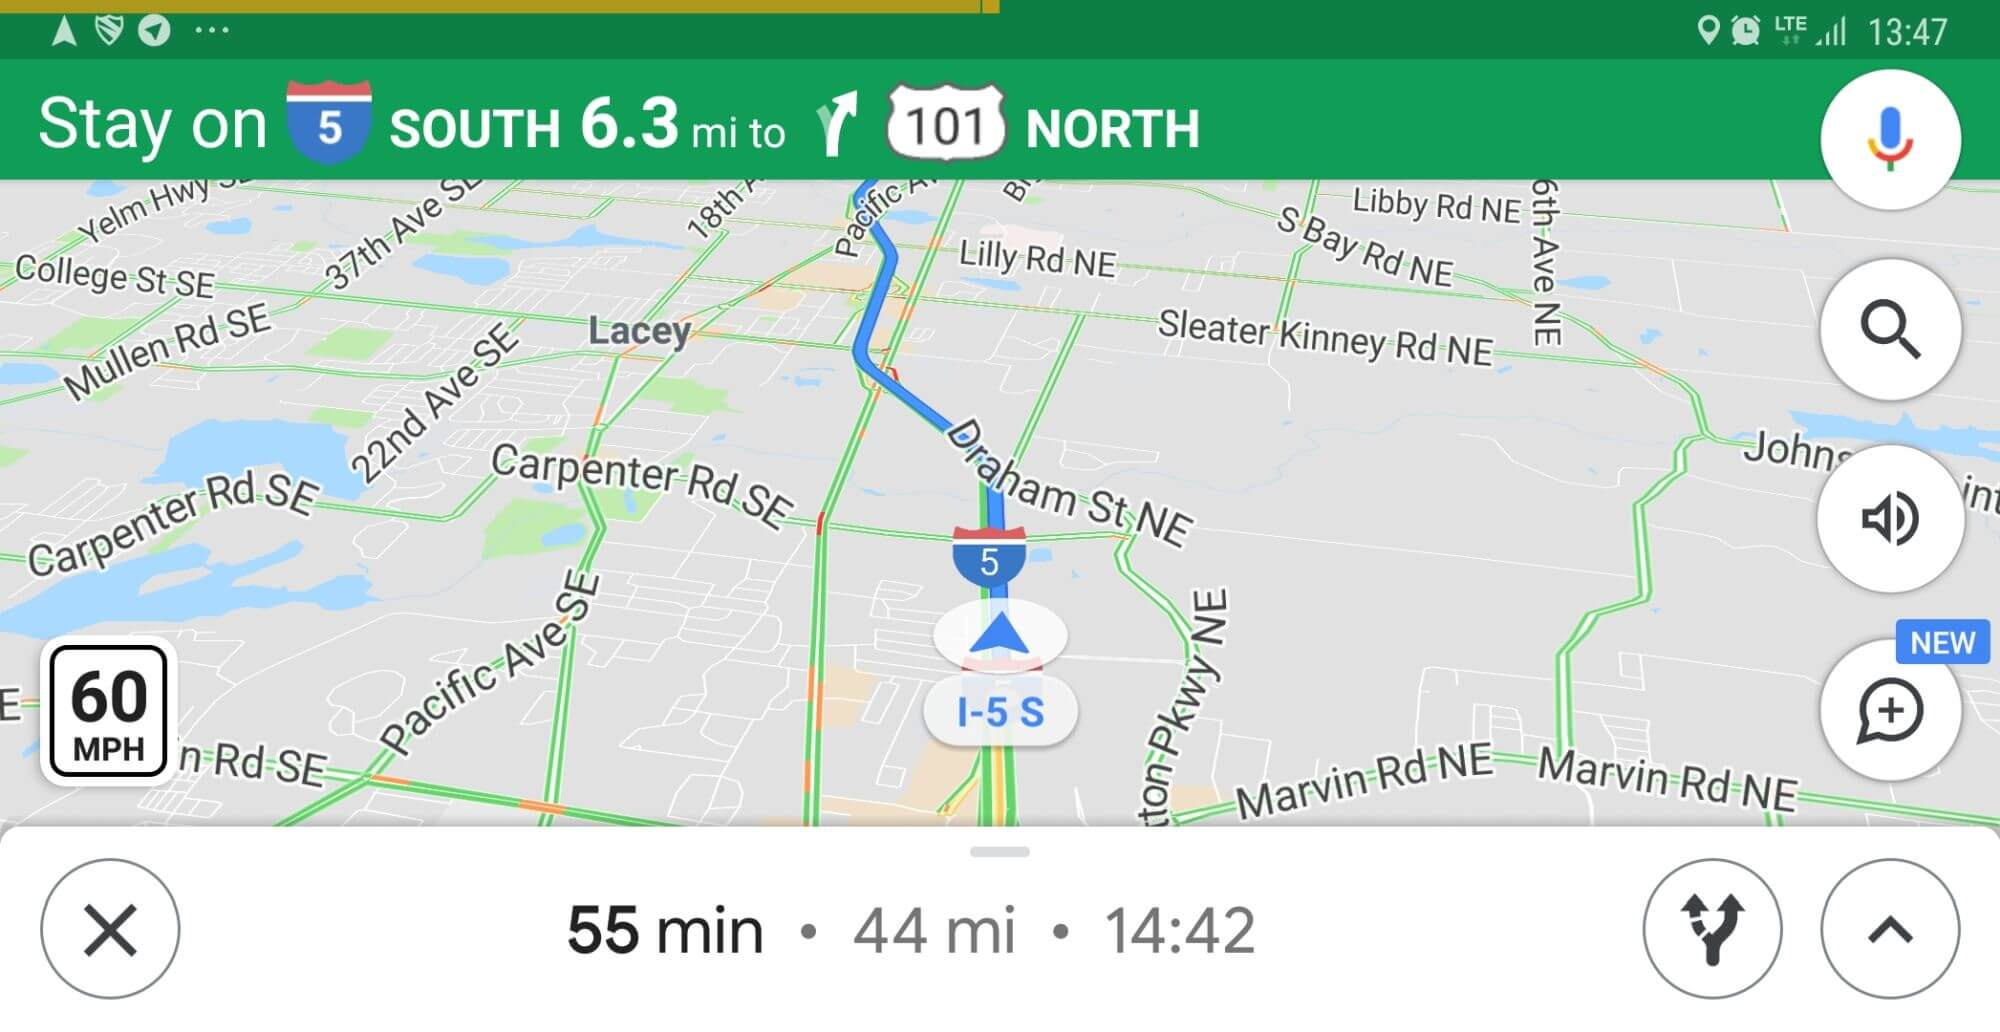 Google Maps Will Now Show Speed Limits Everywhere - Gate to